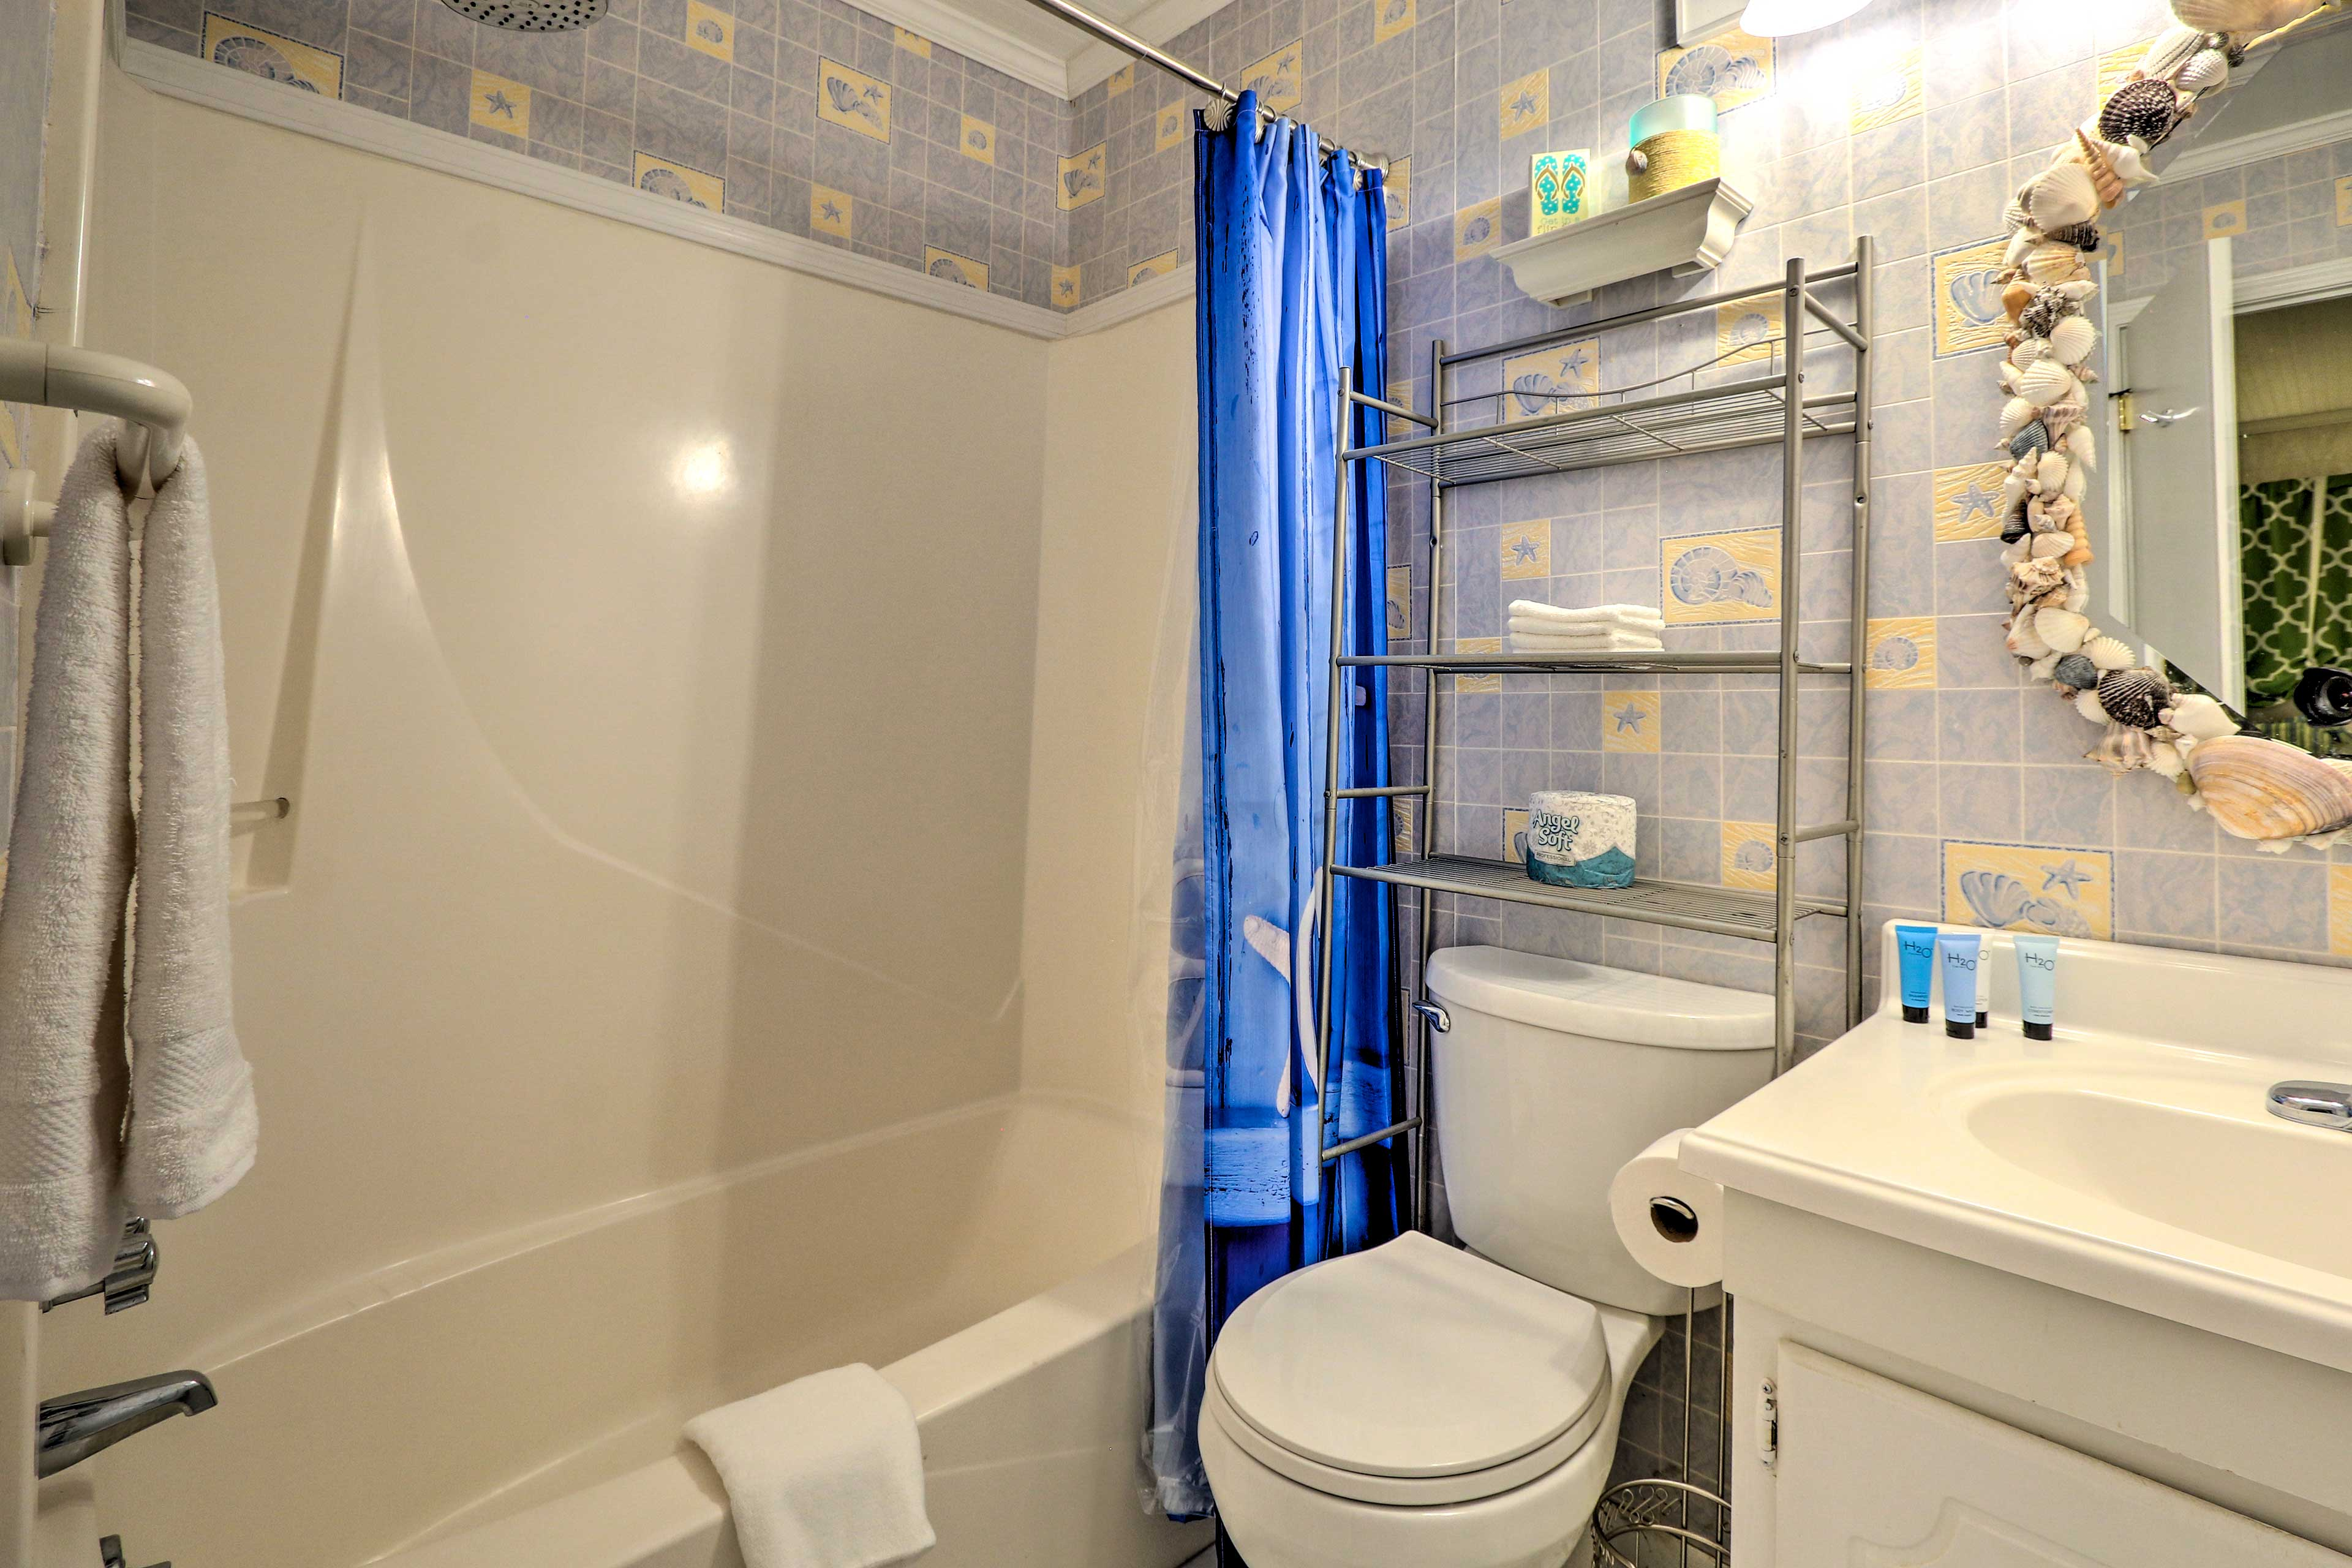 Rinse off the saltwater and sunscreen in the shower/tub combo.